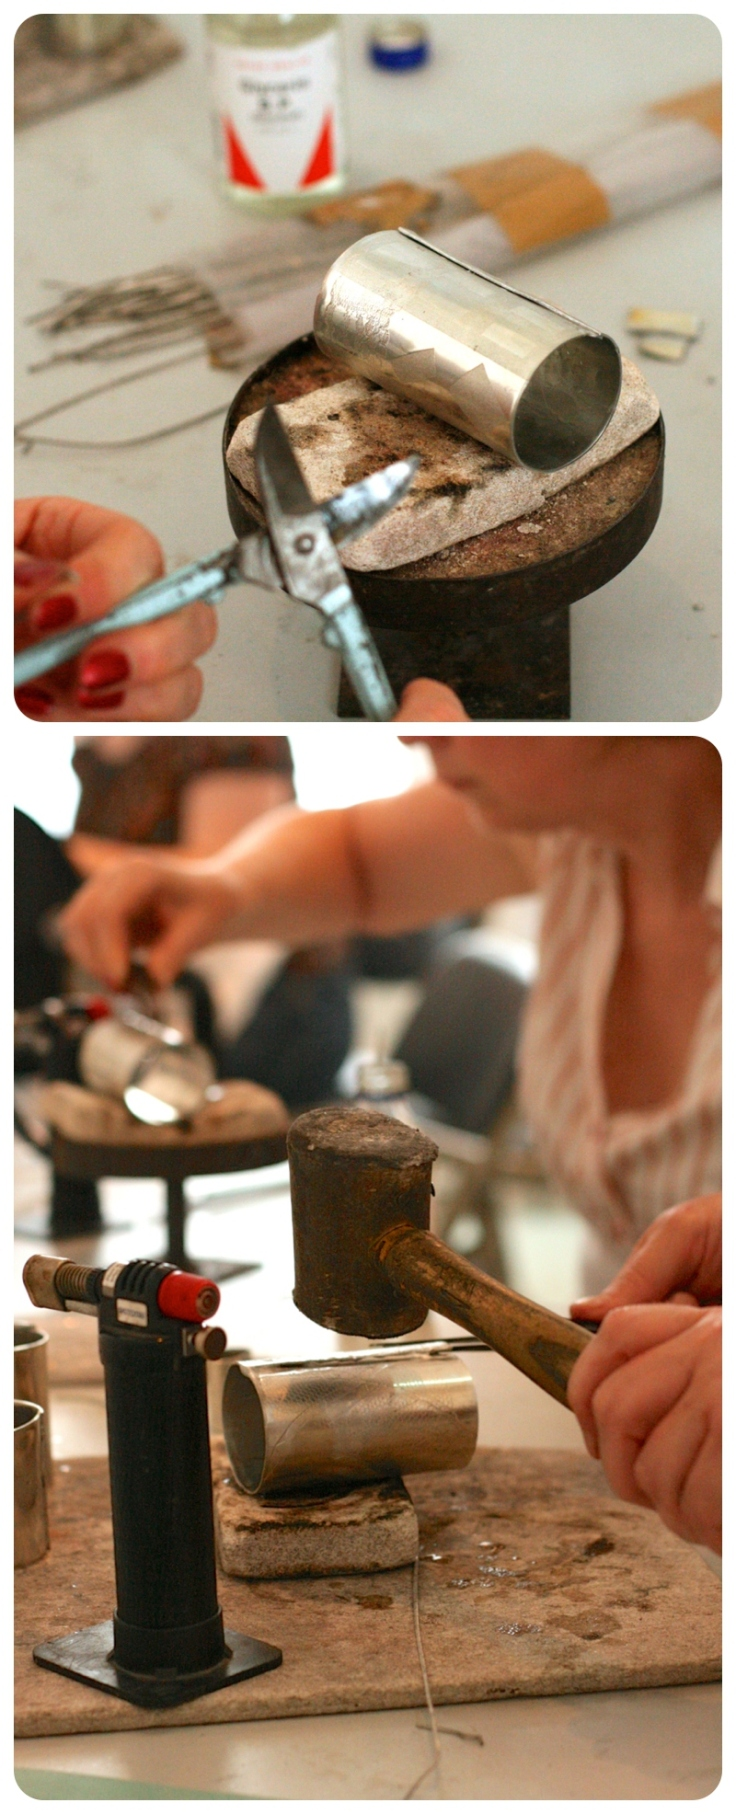 Learning how to work with pewter. Craft course at Manchester Craft Centre on pewter skills